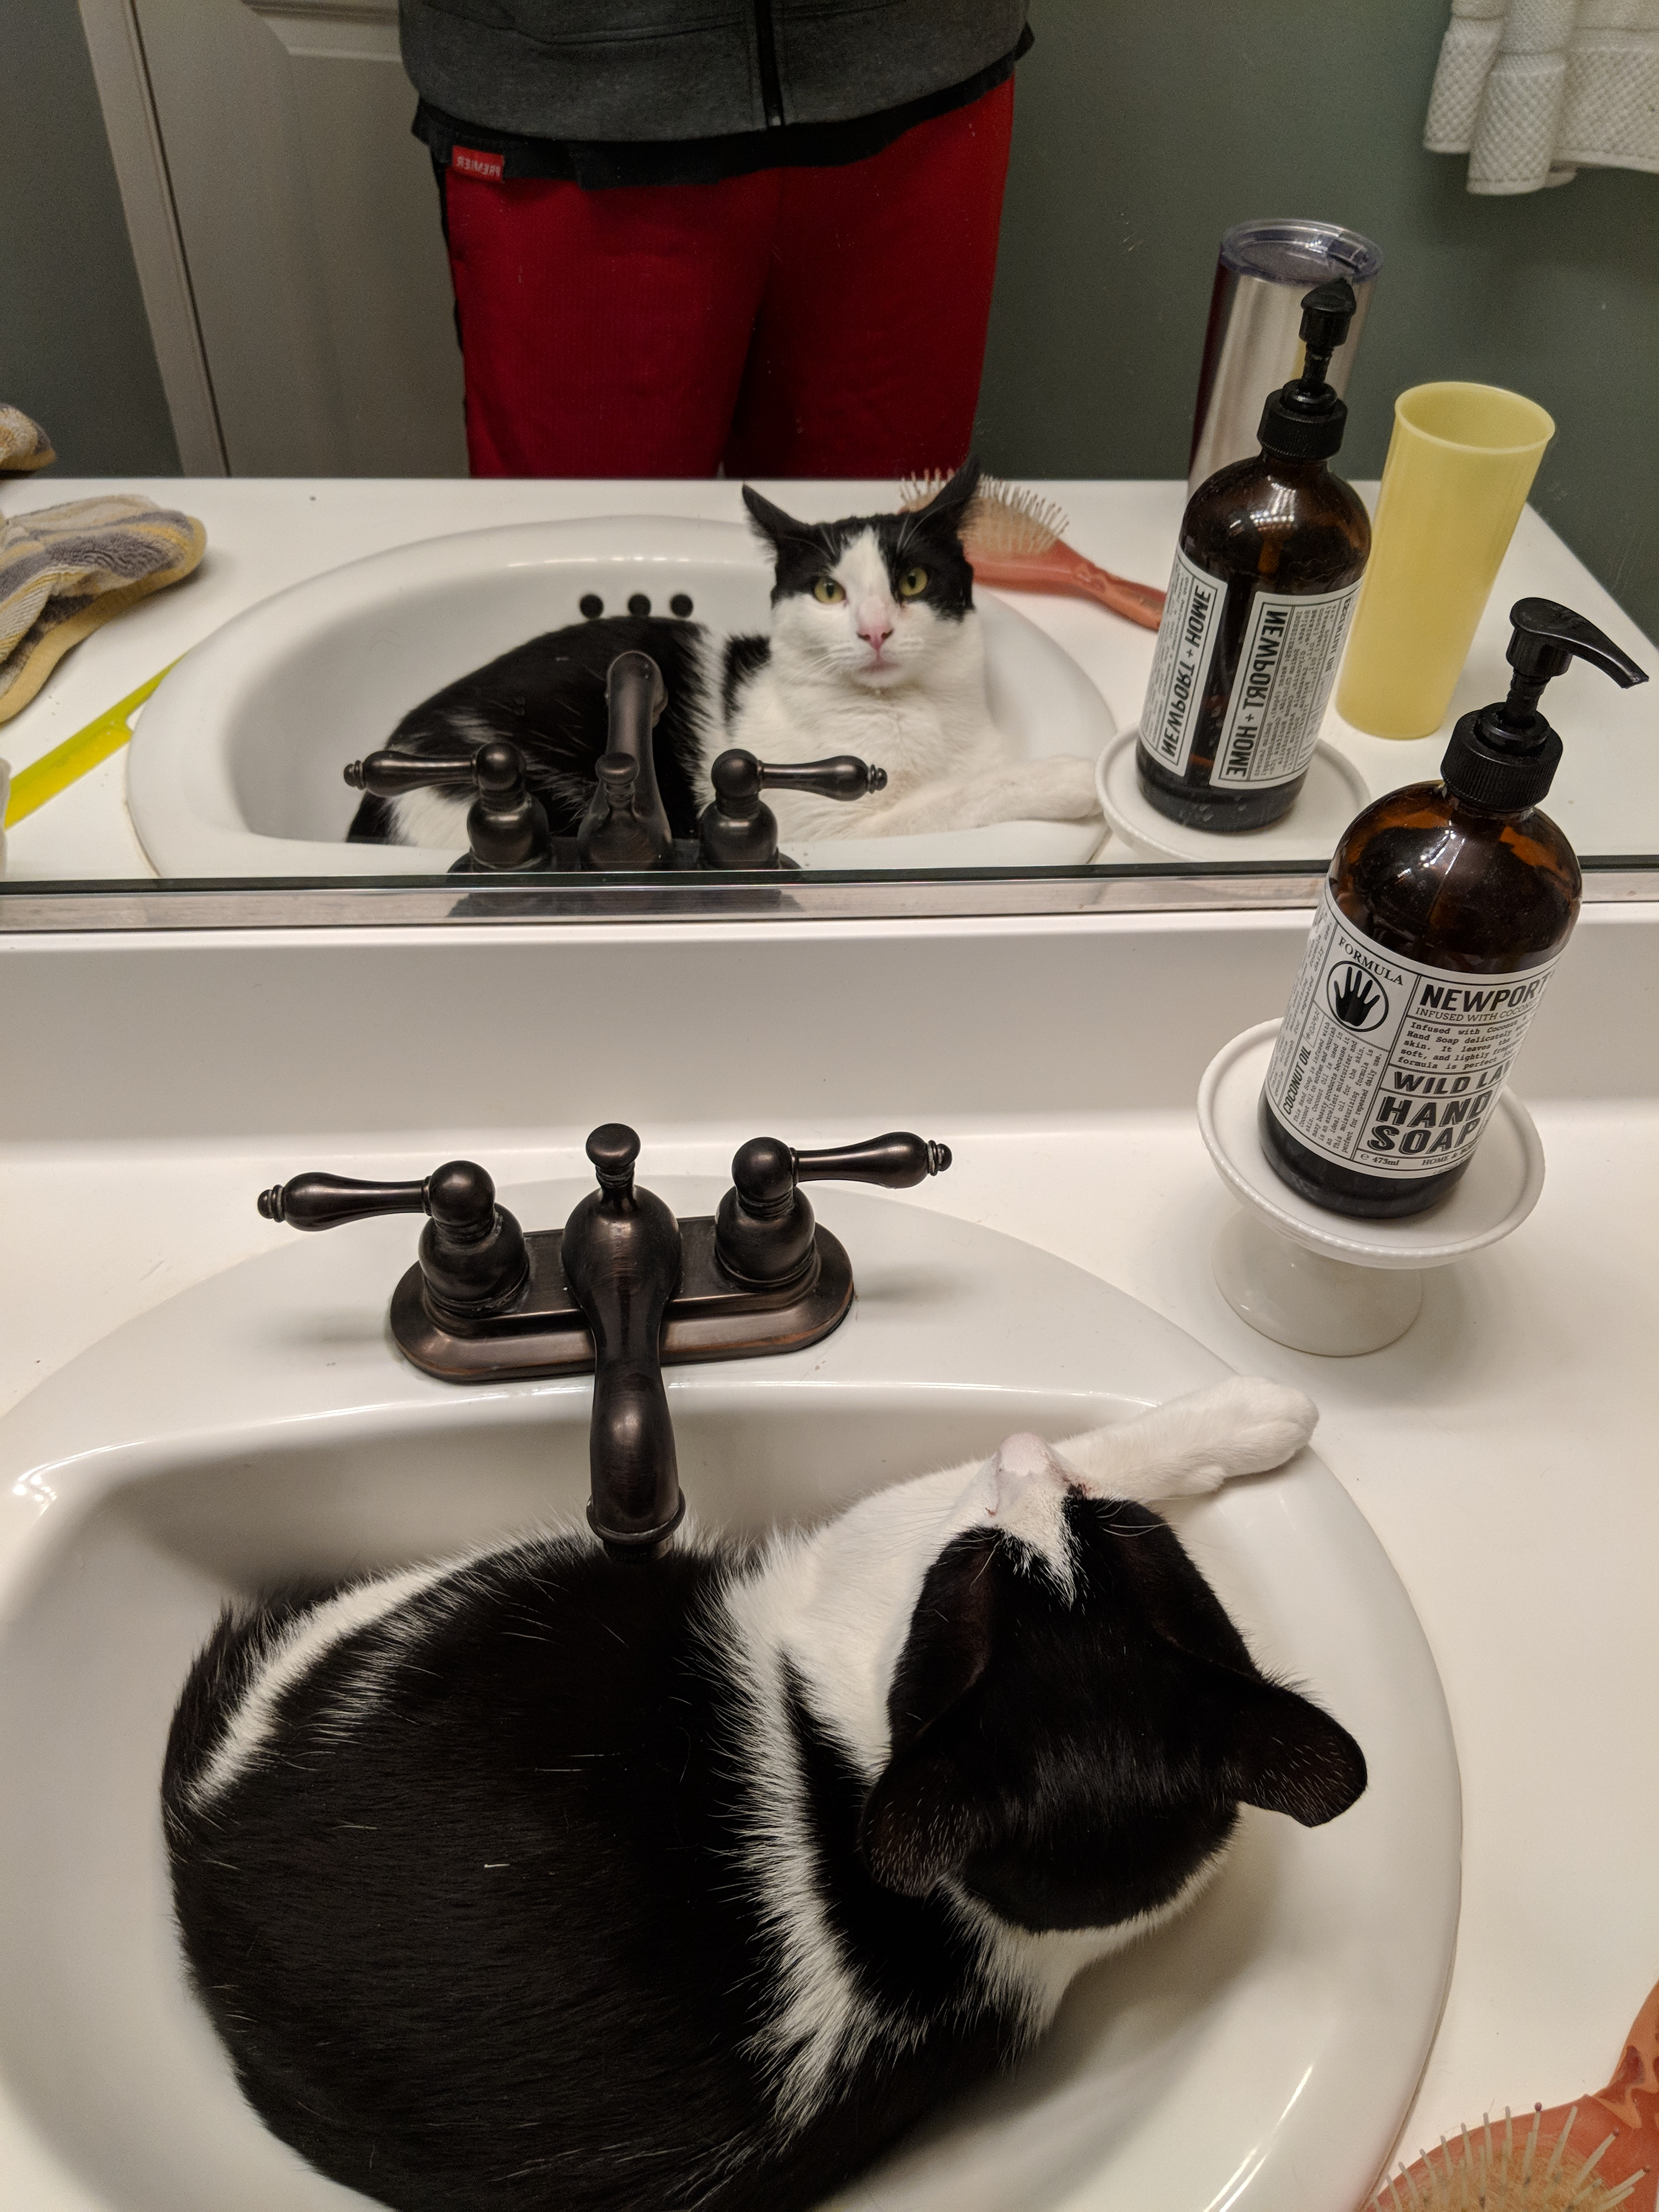 How About A Pet Picture Thread: Dogs, Cats, ...-cowboys-sink.jpg